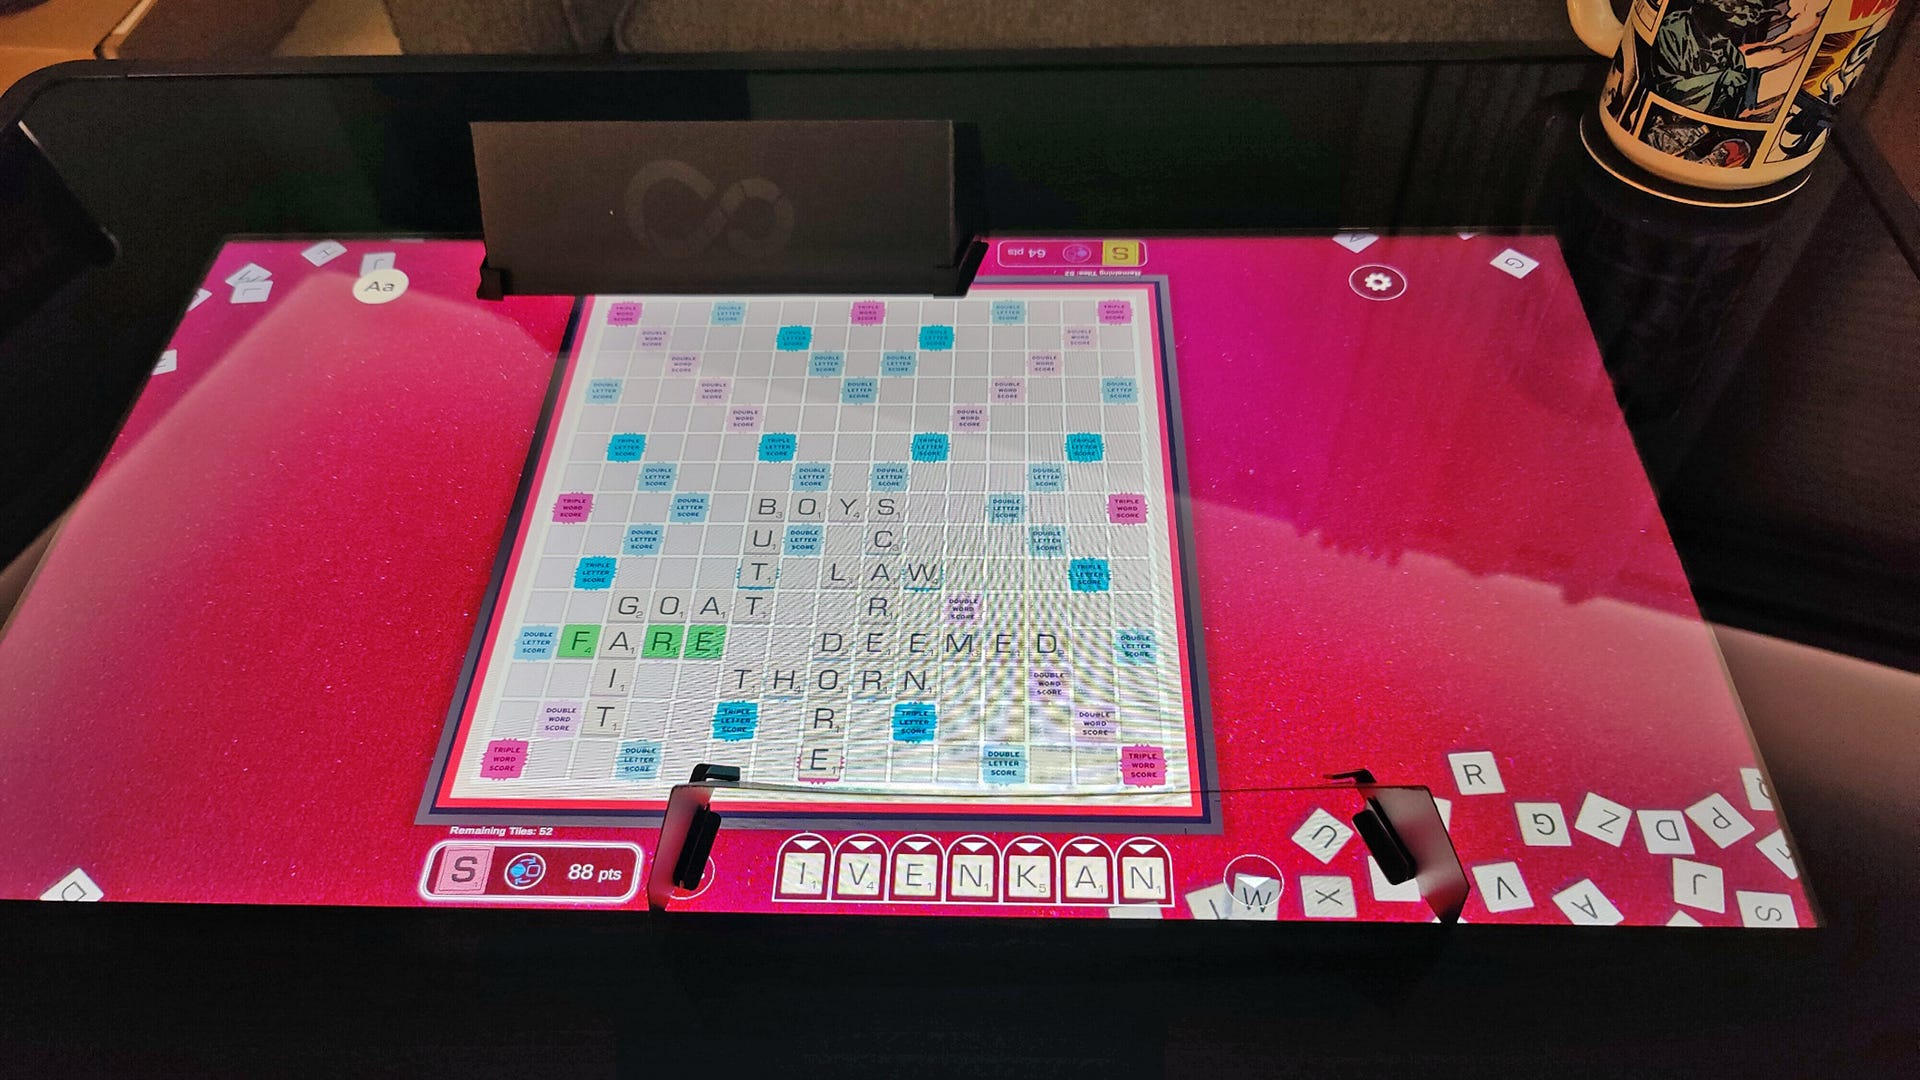 A game of 'Scrabble' with paper screens blocking the view of pieces